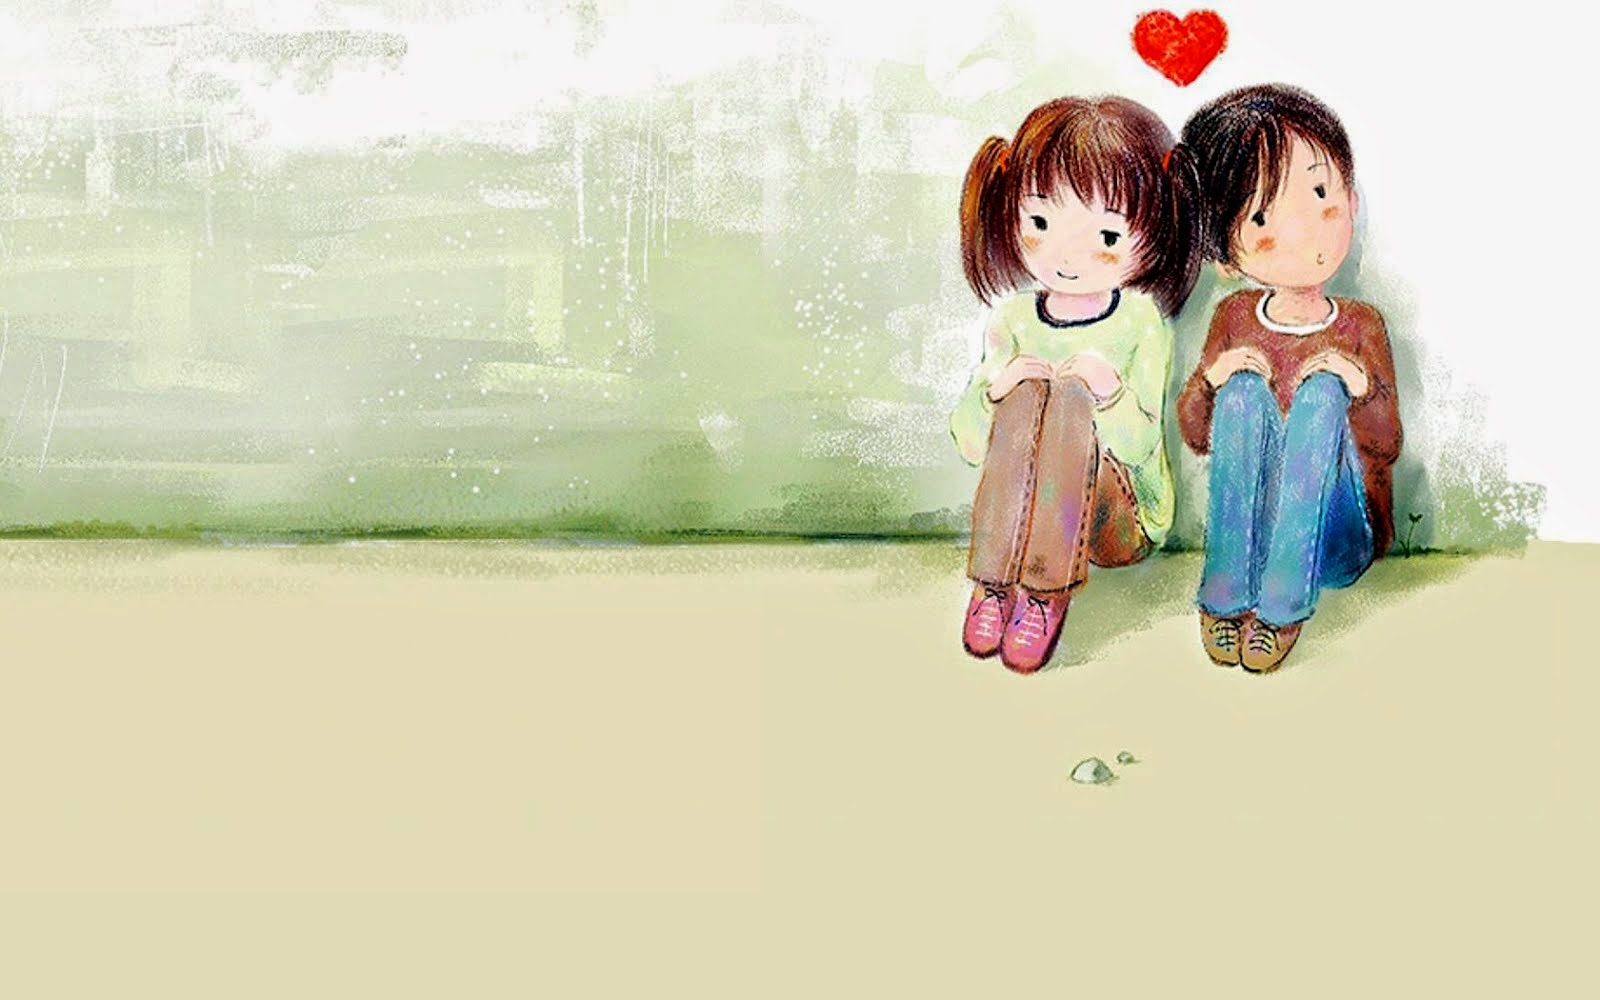 cartoon Love couple Hd Wallpaper : cute Little cartoon couple In Love HD Wallpaper Best Love HD Wallpapers